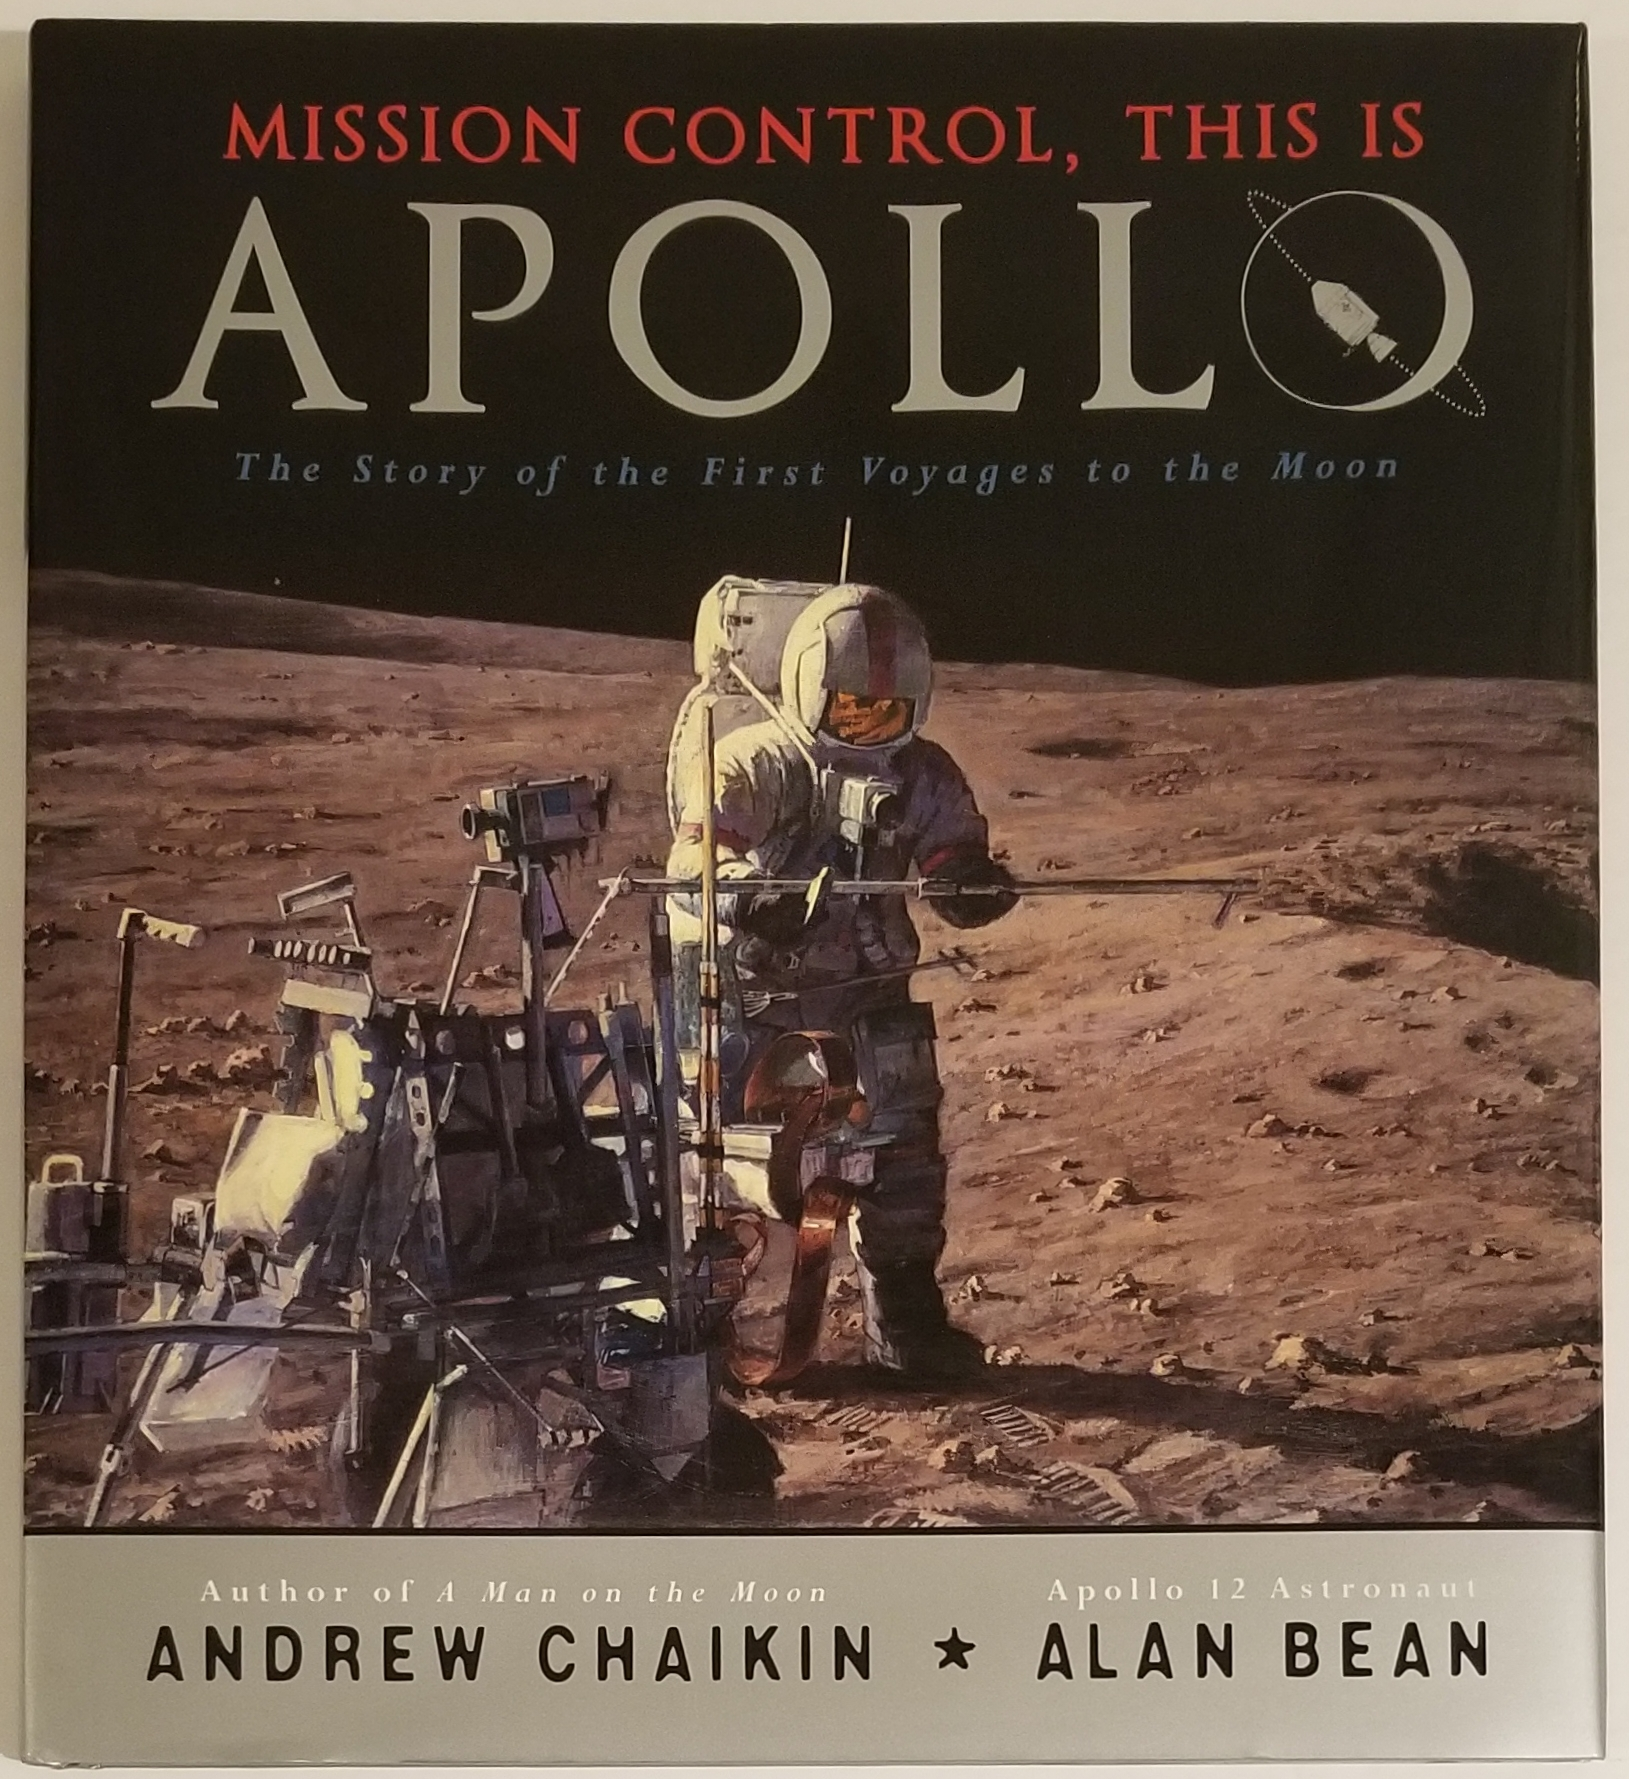 MISSION CONTROL, THIS IS APOLLO. Andrew Chaikin, Alan Bean.